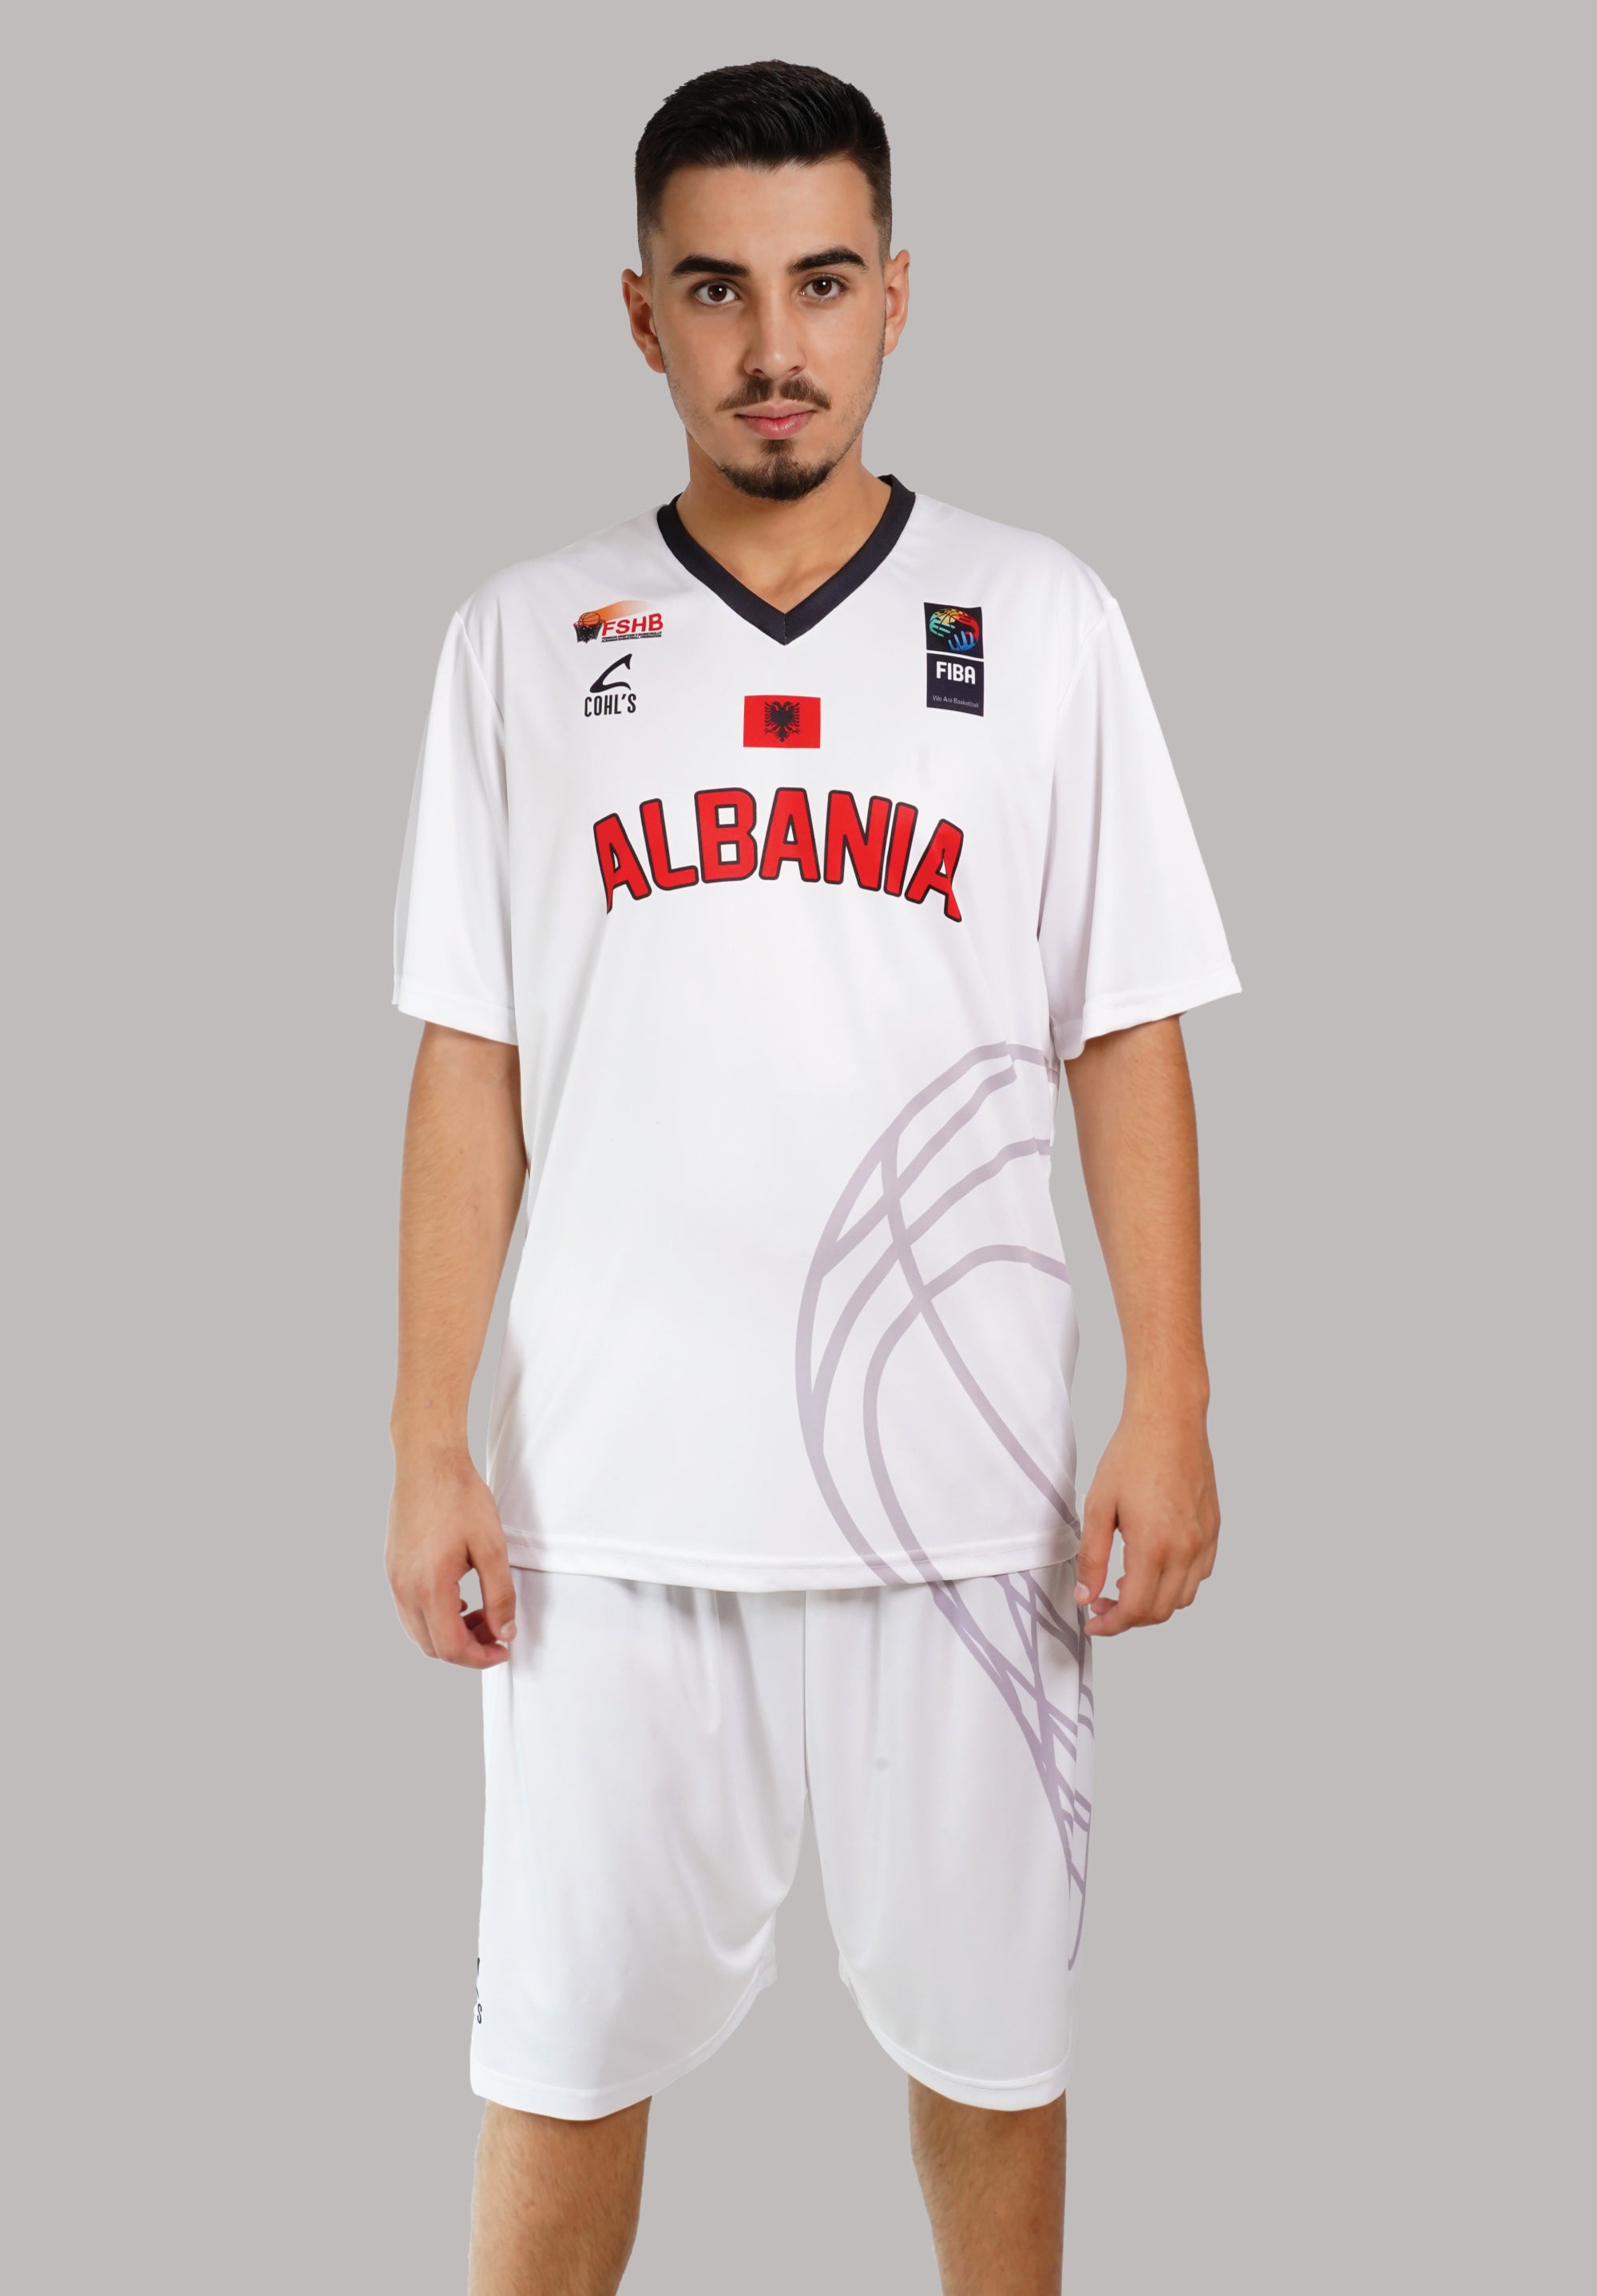 Basket Training Uniform - Man